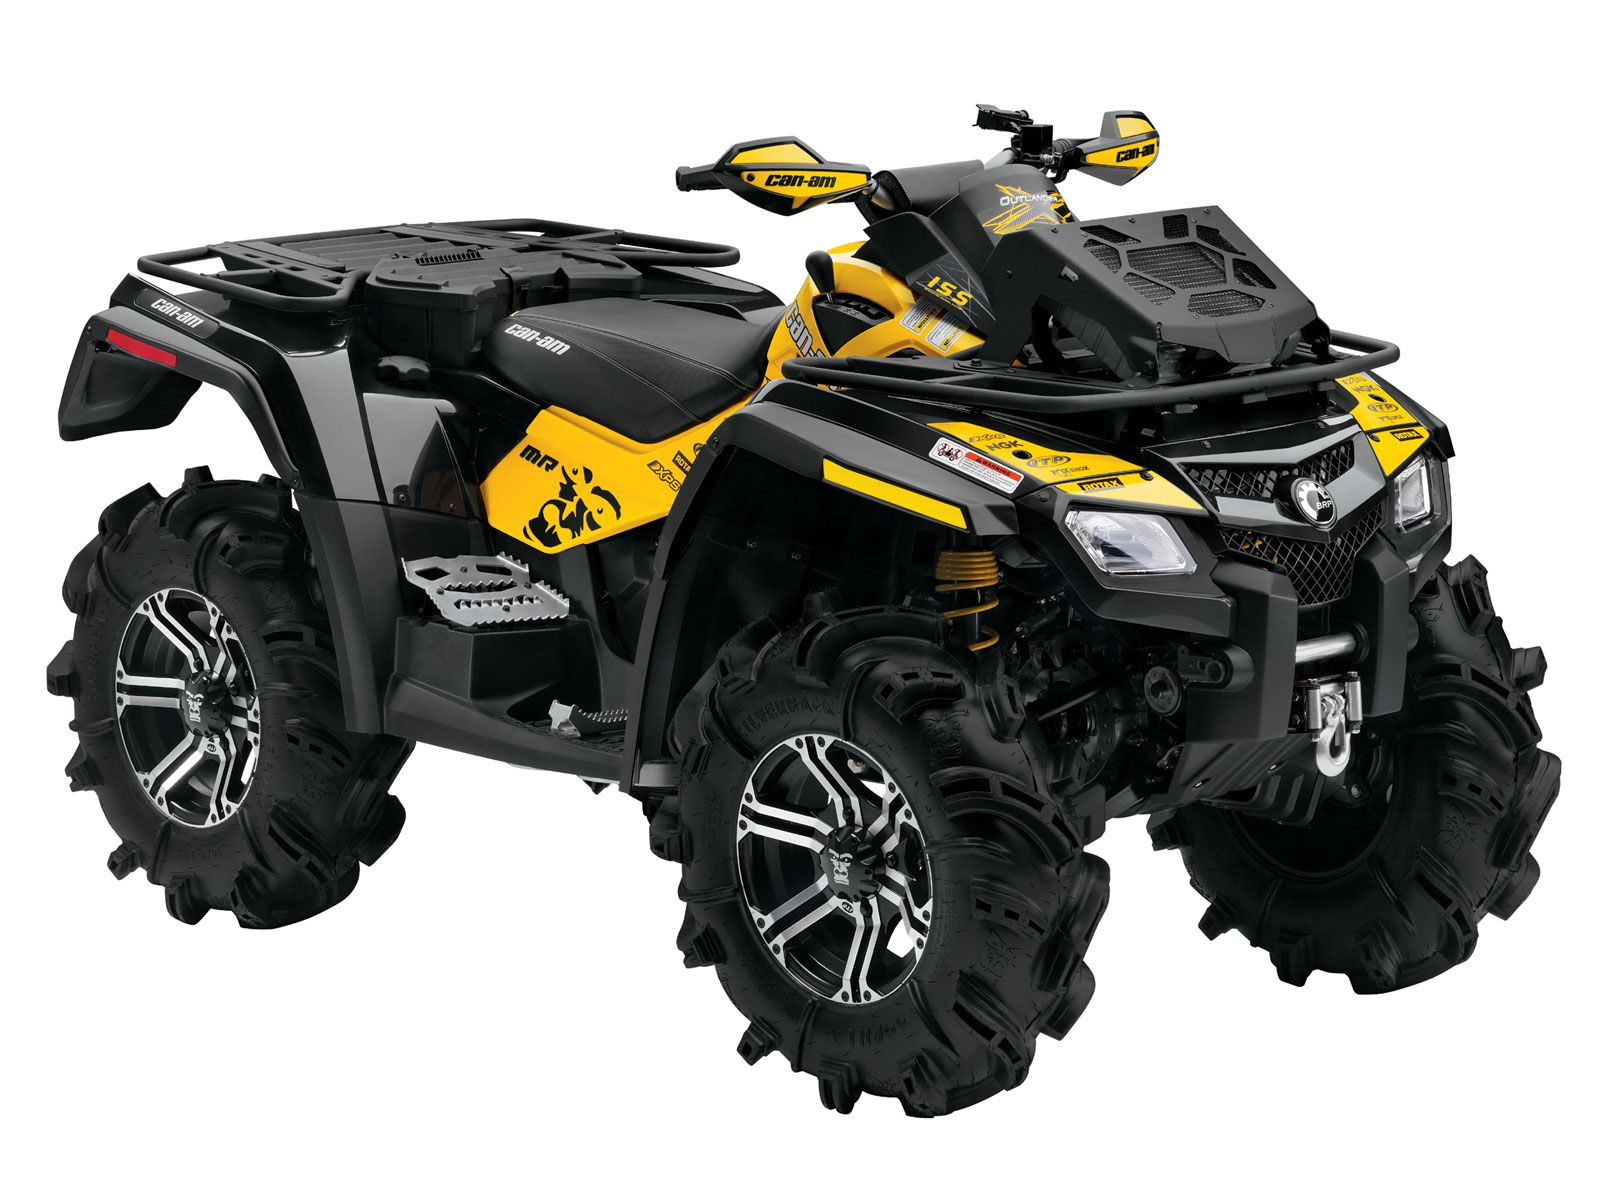 2011 can am sxs for us atv lovers such as me great off road